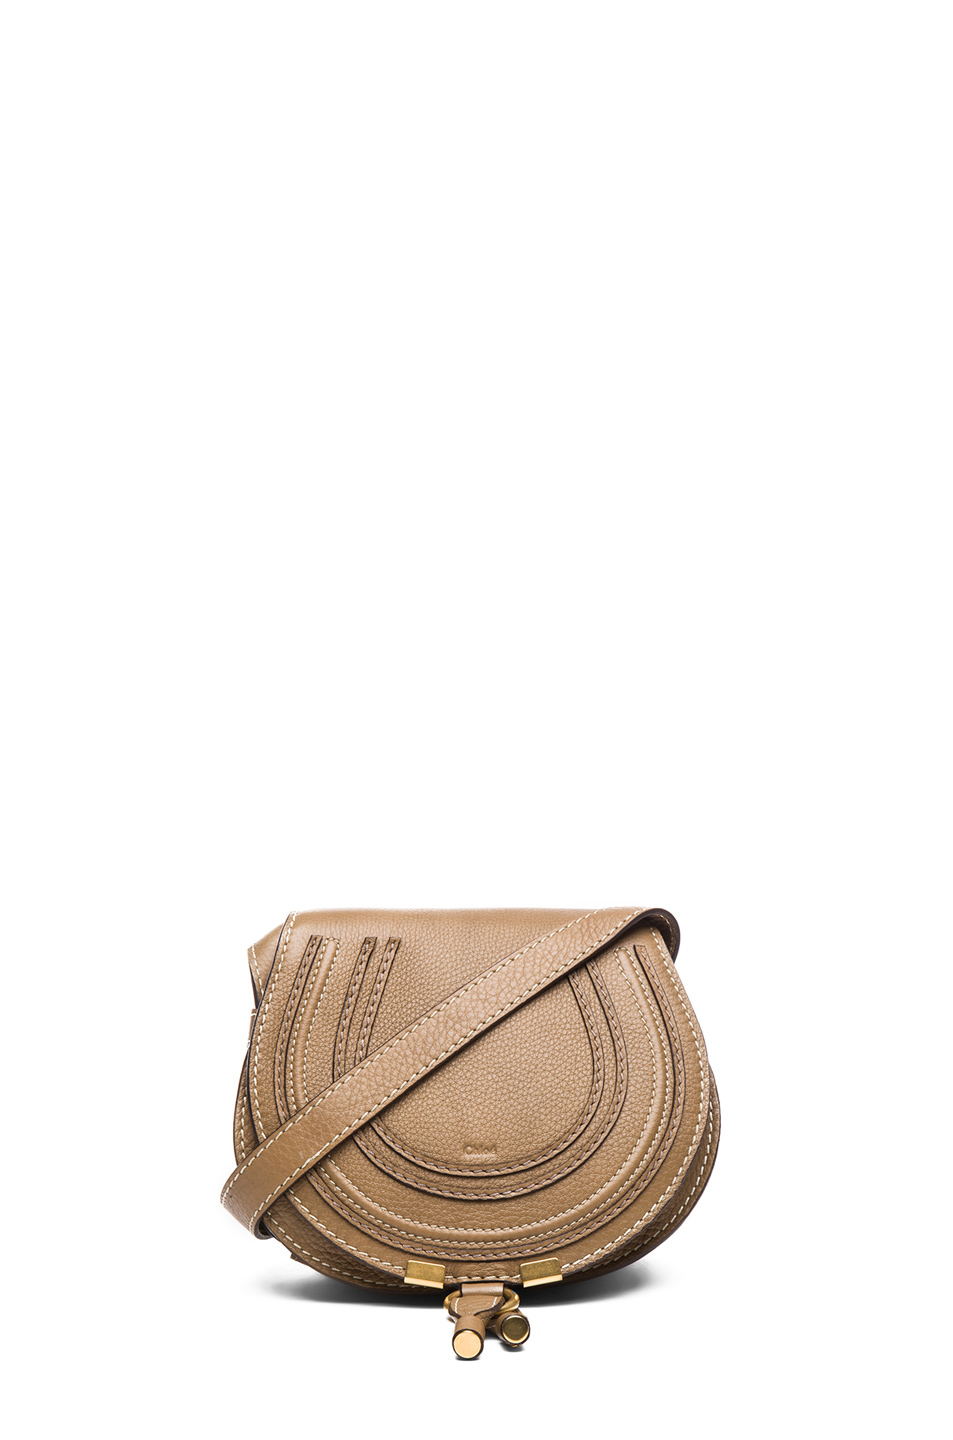 chloe marcie crossbody saddle bag